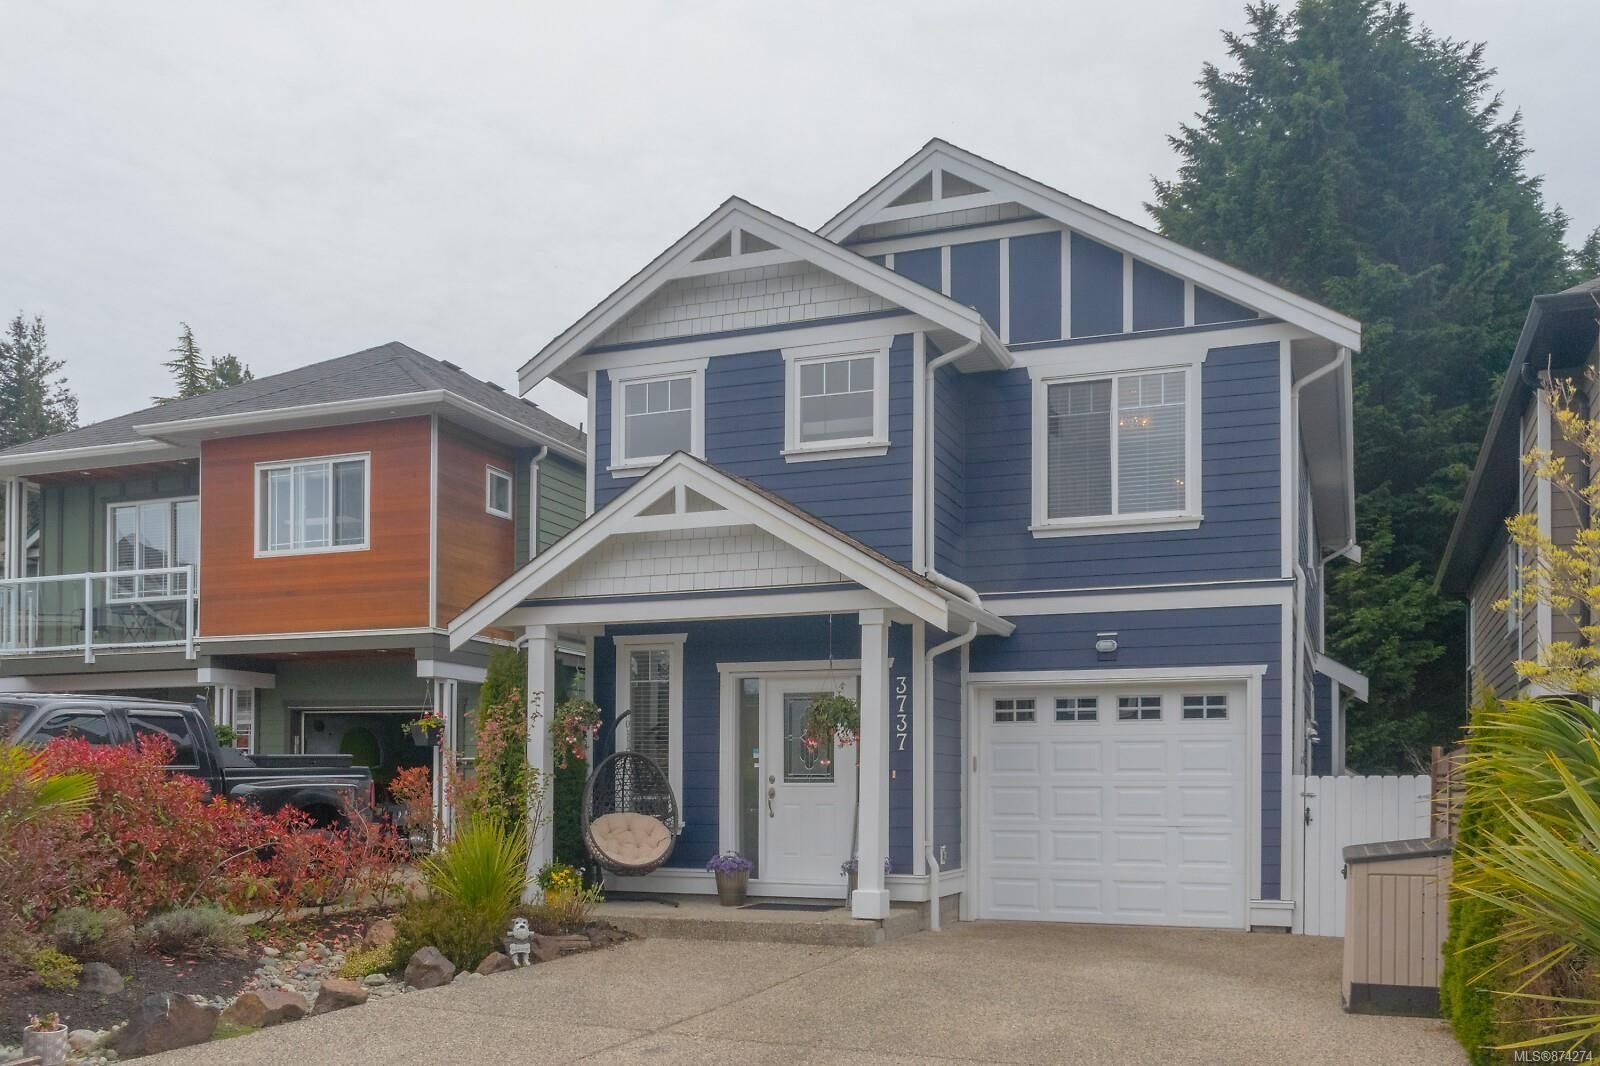 Main Photo: 3737 Cornus Crt in : La Happy Valley House for sale (Langford)  : MLS®# 874274